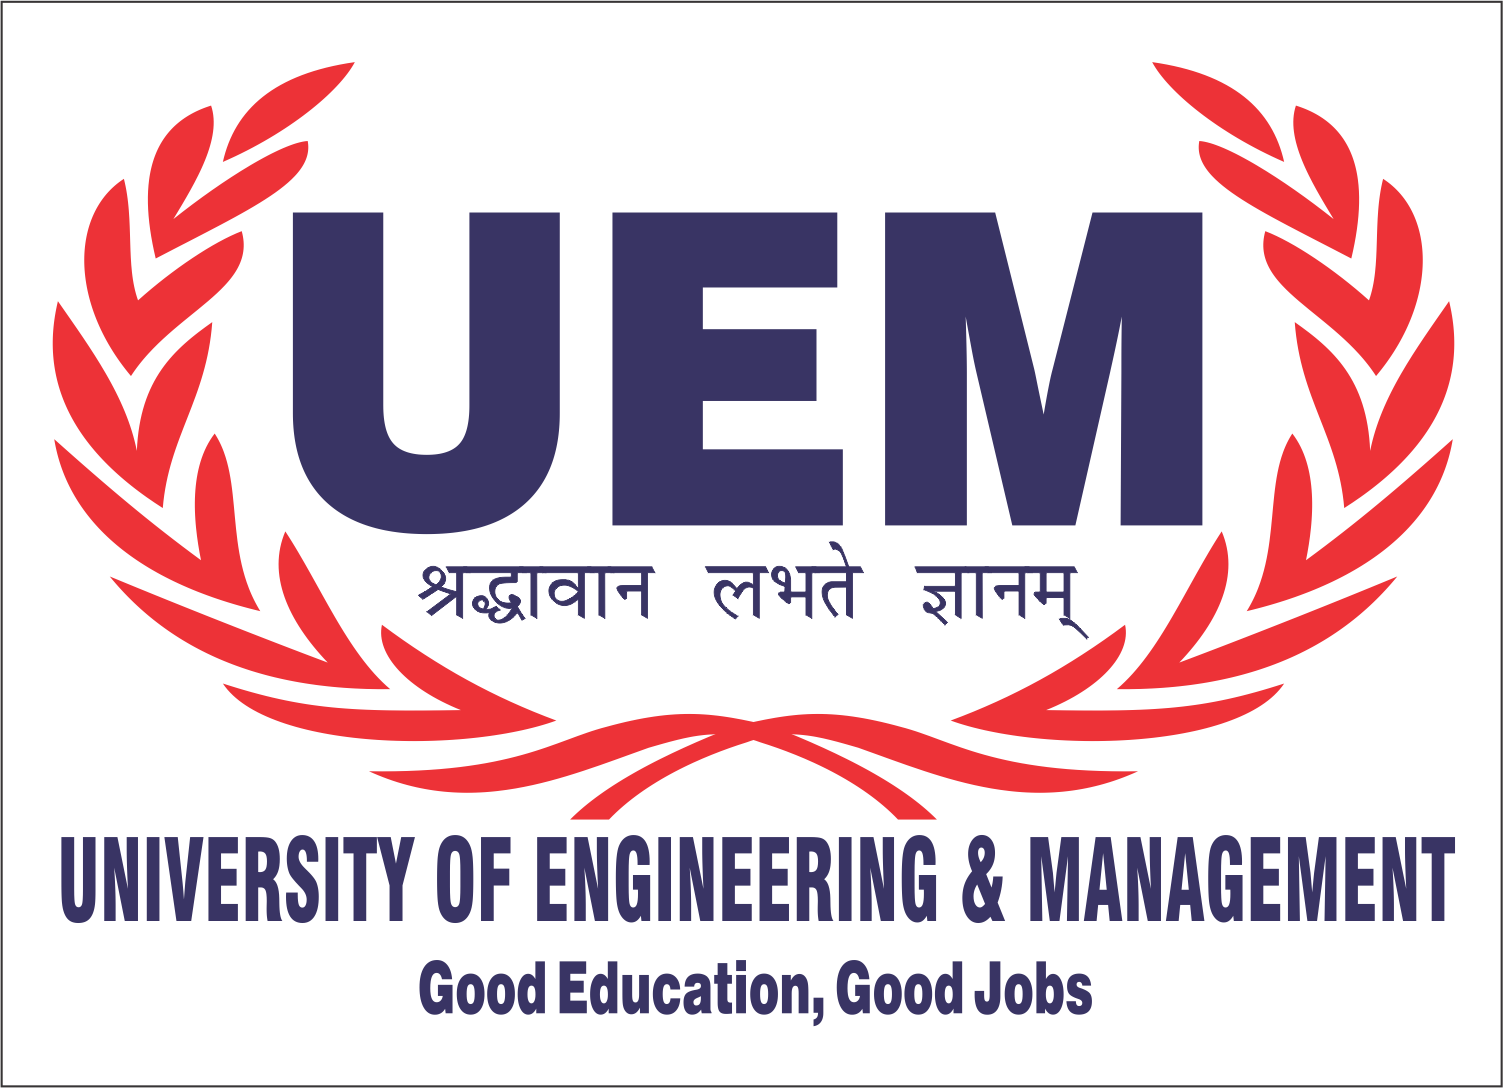 University of Engineering & Management Kolkata